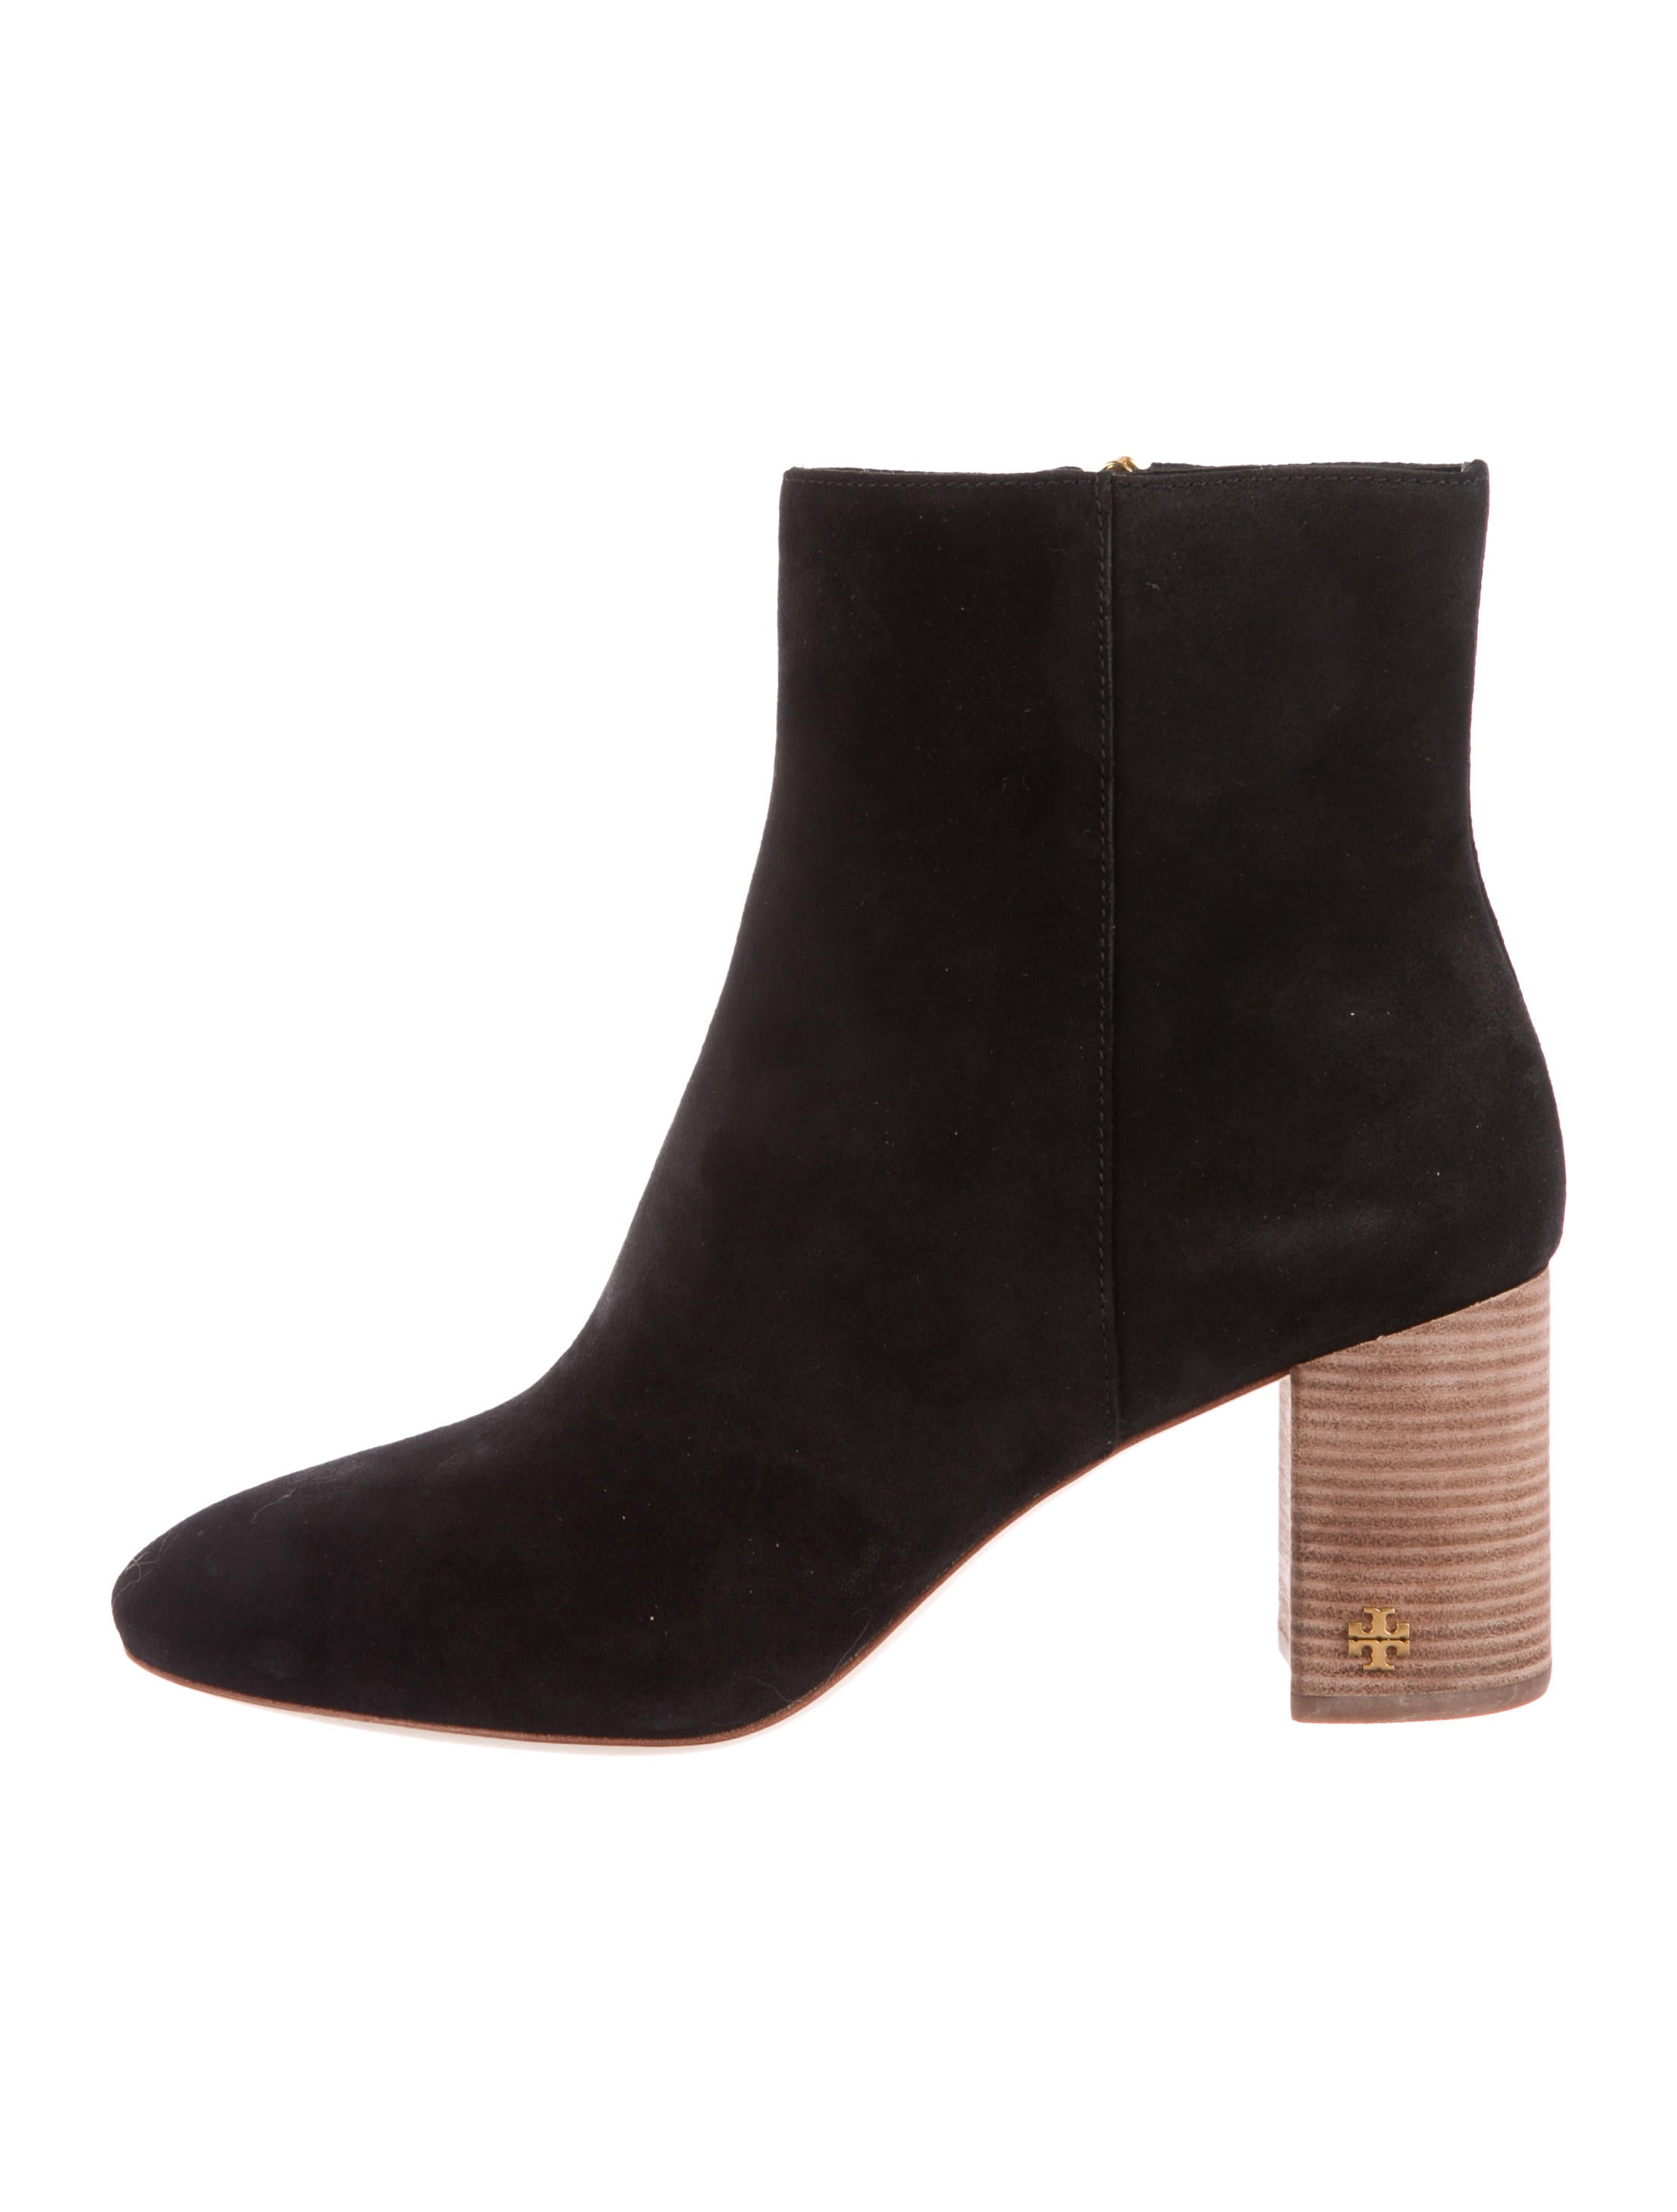 Tory Burch Brooke Suede Ankle Boots w/ Tags cheap big sale outlet newest geniue stockist for sale pre order online big discount online Q83kqfShbR